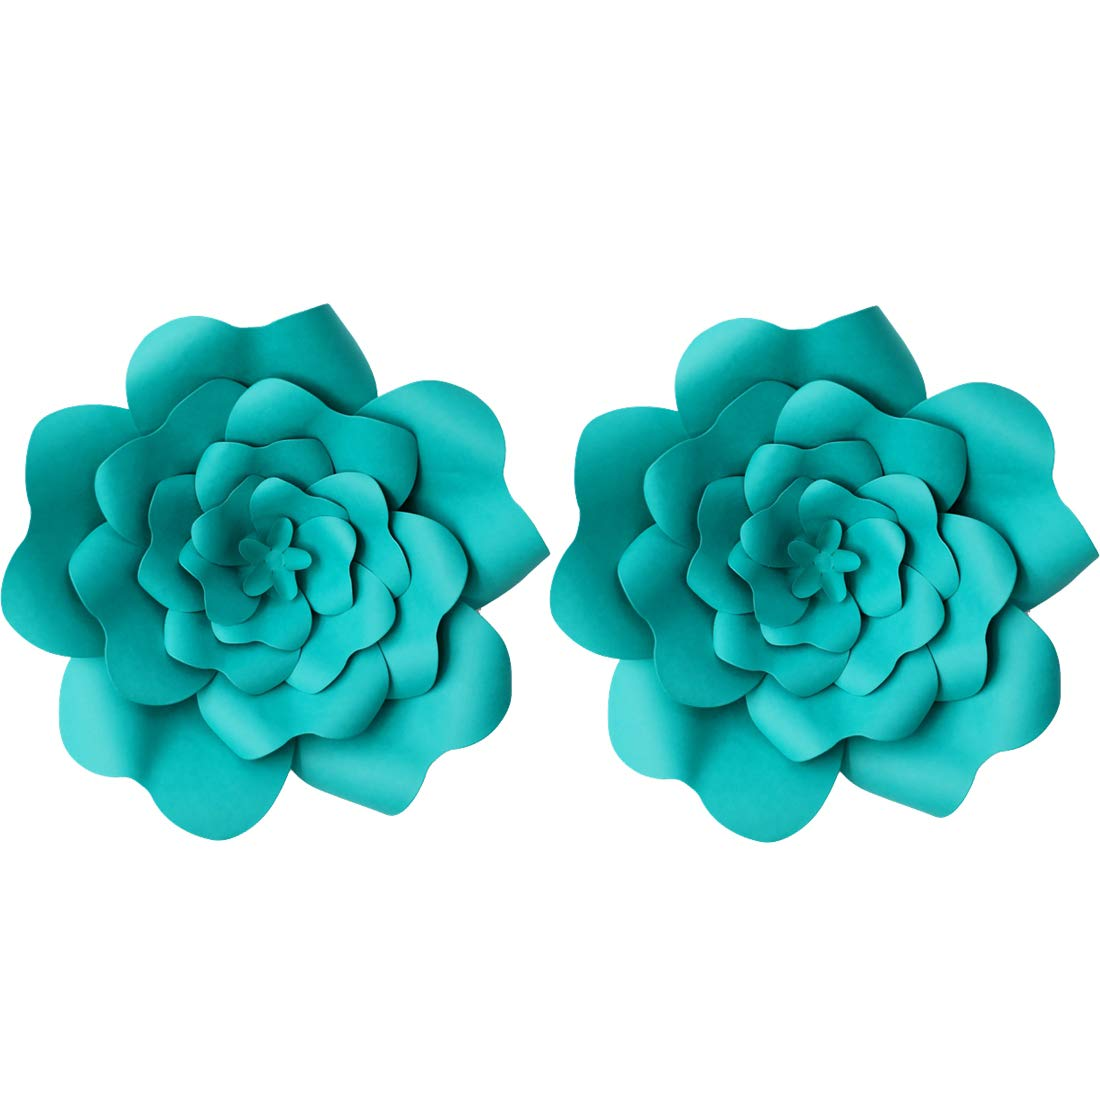 LG-Free 2pcs Paper Flower Decroations 3D Paper Flower DIY Handcrafted Flowers Wedding Party Backdrop Flowers Wall Backdrop Flower for Birthday Table Baby Shower Home Decor (12inch, Pond Green)